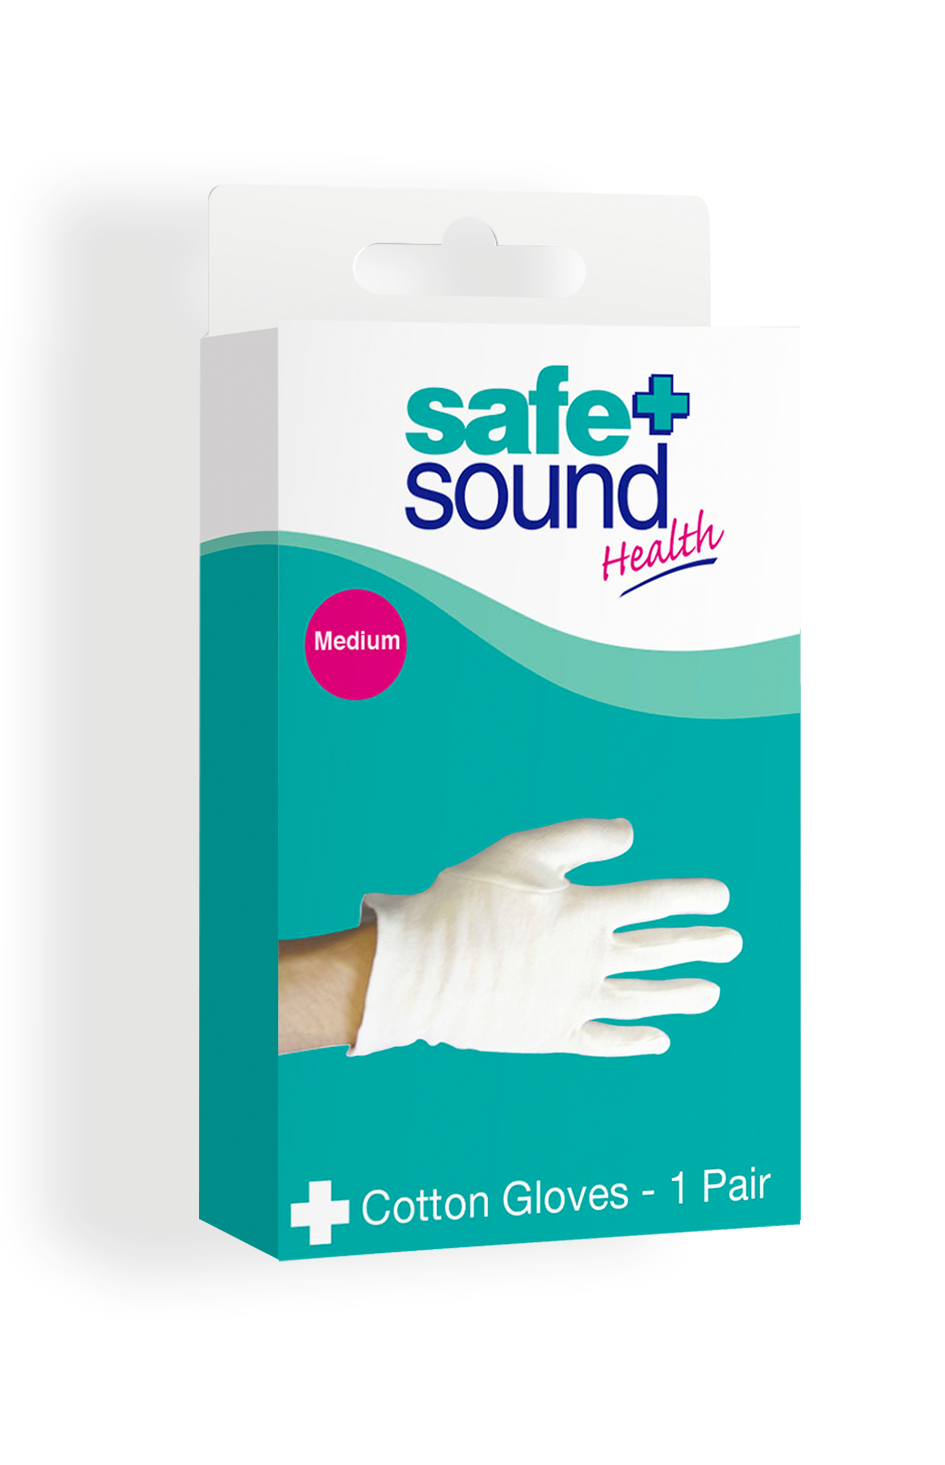 Safe and Sound Health Medium Size Cotton Gloves